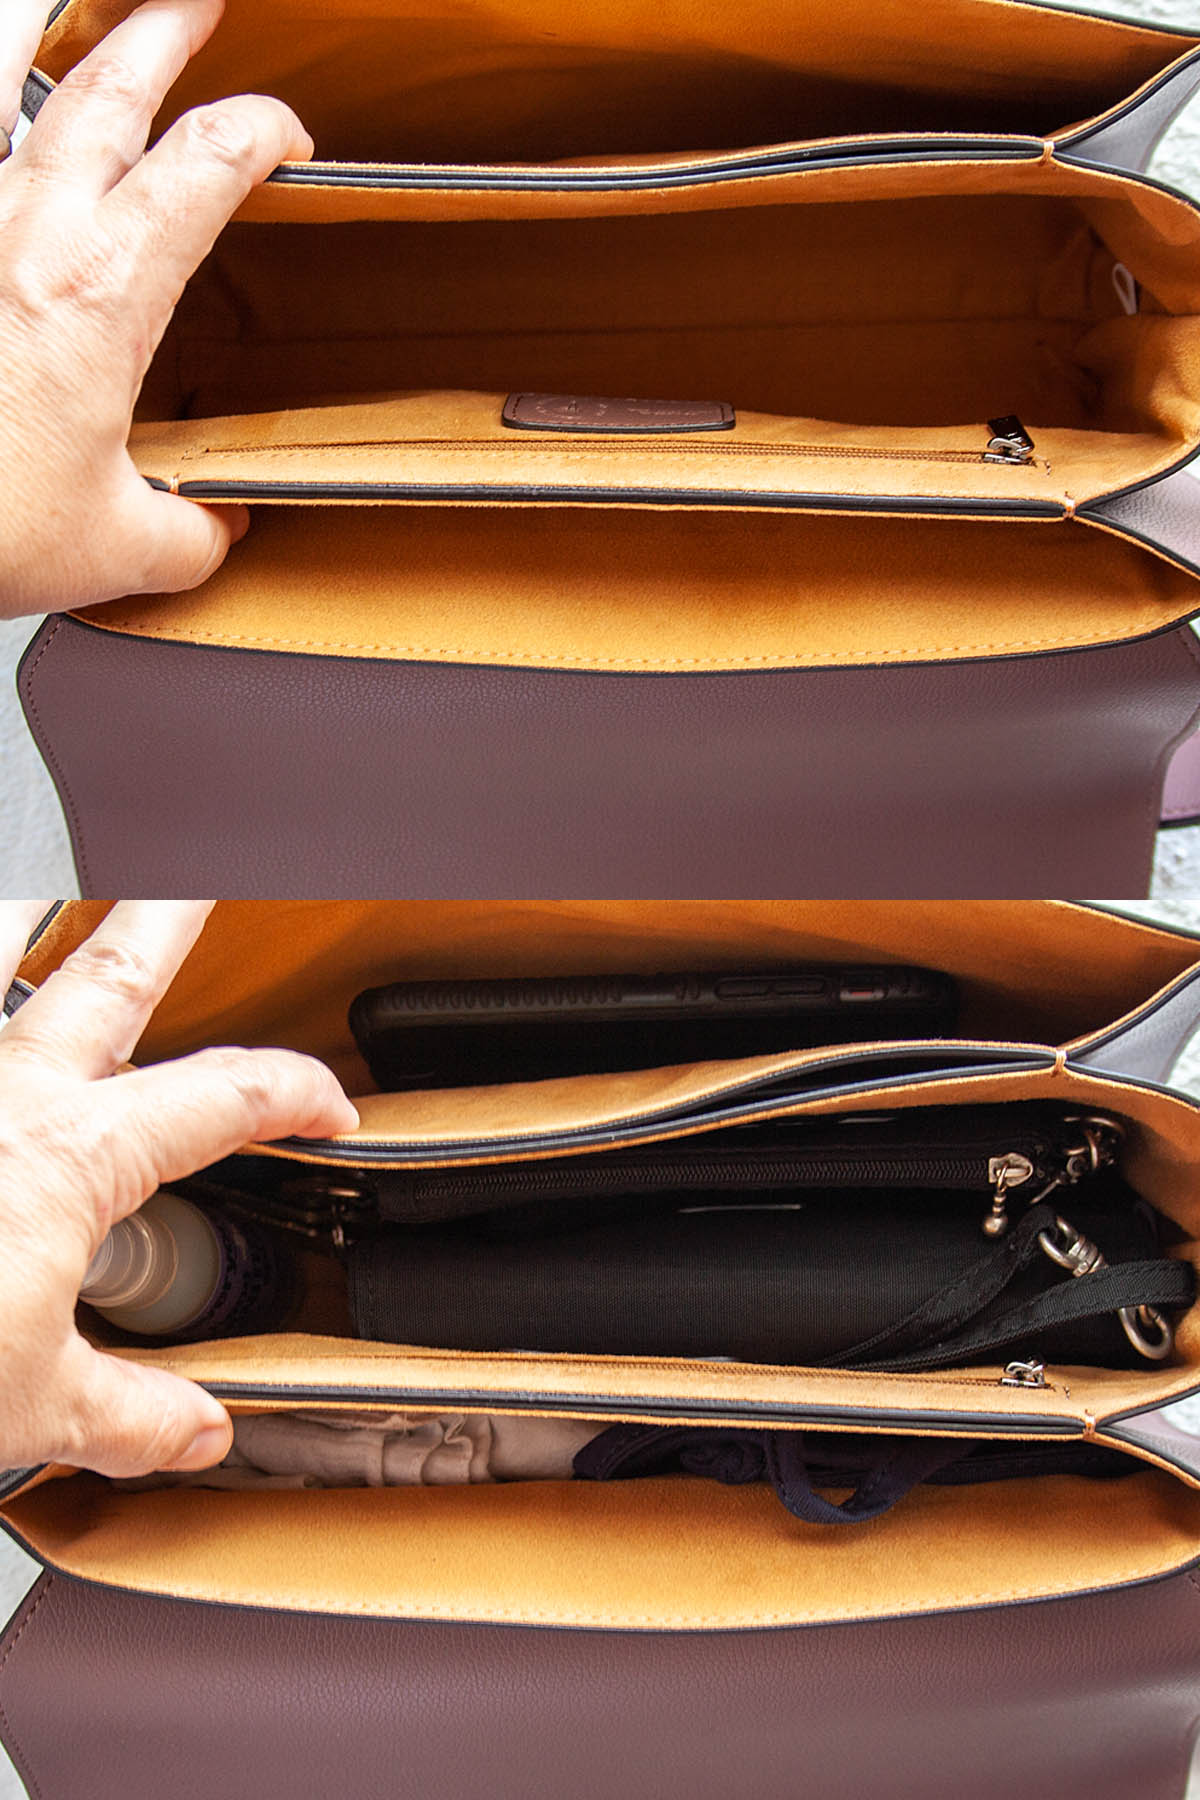 Inside of Hamilton Shoulder Bag both empty and with contents.